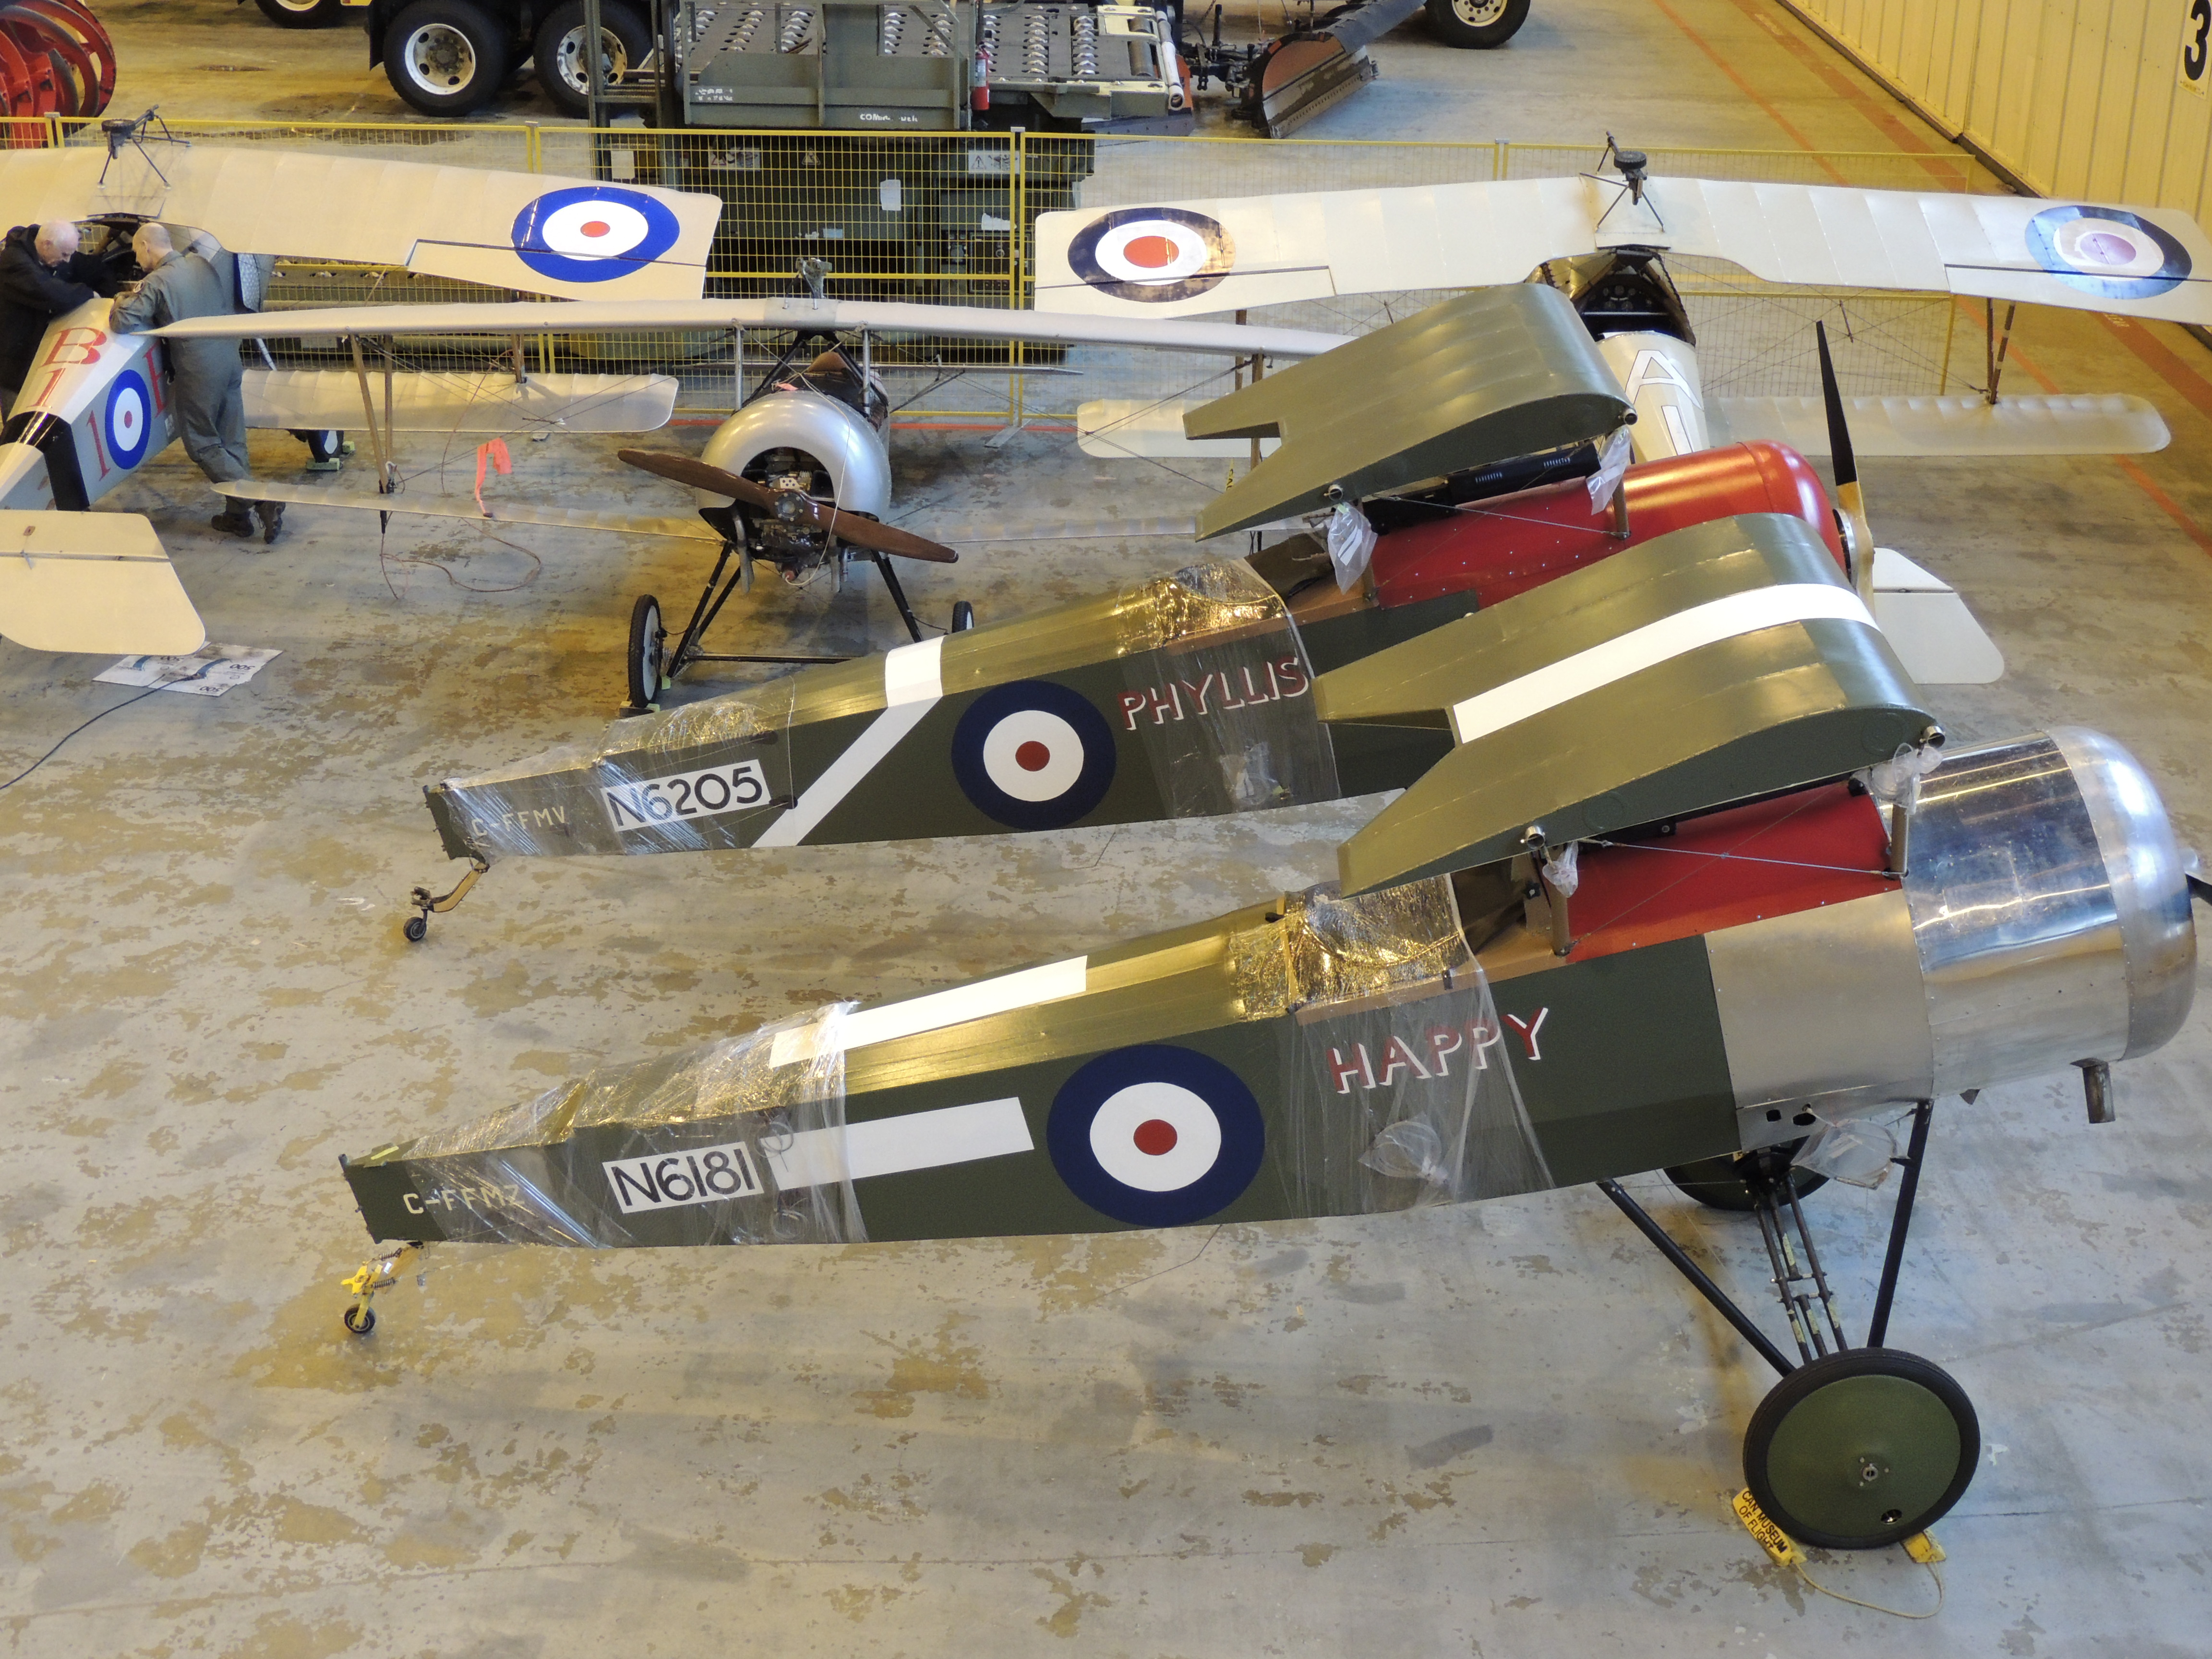 The Vimy Flight Association's two Sopwith Pups (in the foreground) are ready for loading onto an RCAF CC-177 Globemaster III aircraft for transport to France. The aircraft in the background are Nieuport XIs. PHOTO: Major Holly-Anne Brown